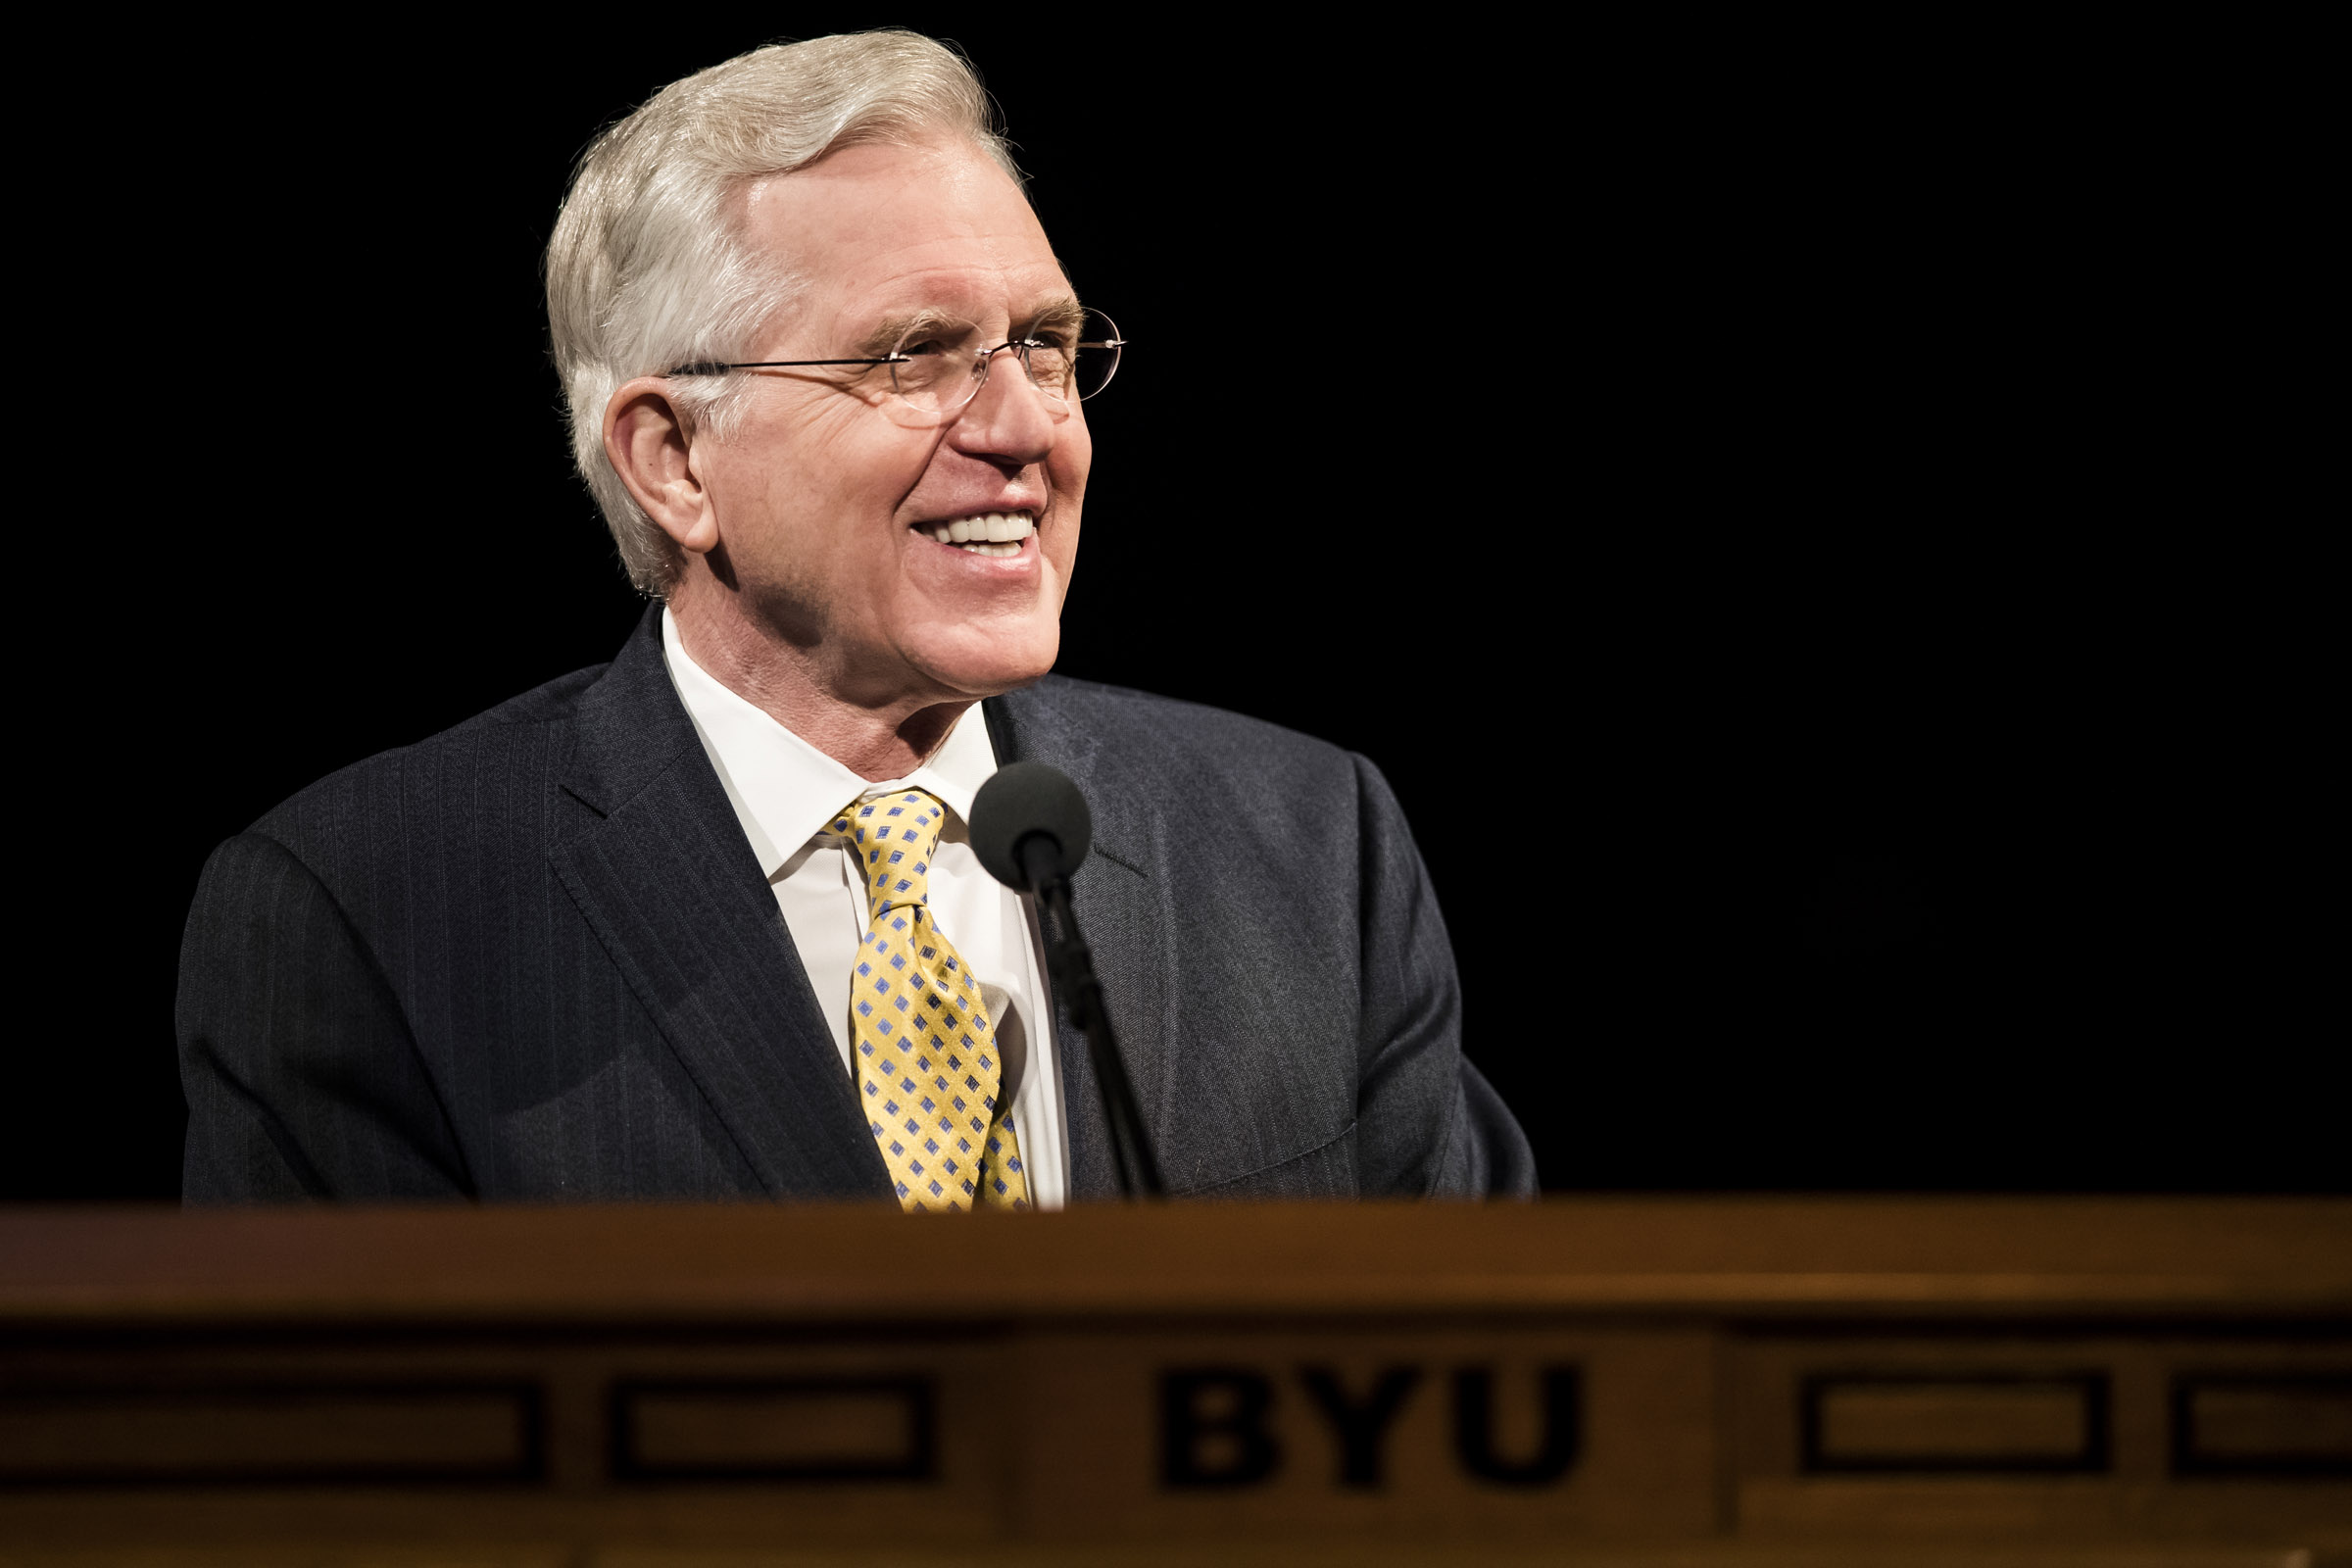 Elder D. Todd Christofferson speaks at a devotional at Brigham Young University in Provo on Dec. 12, 2017.